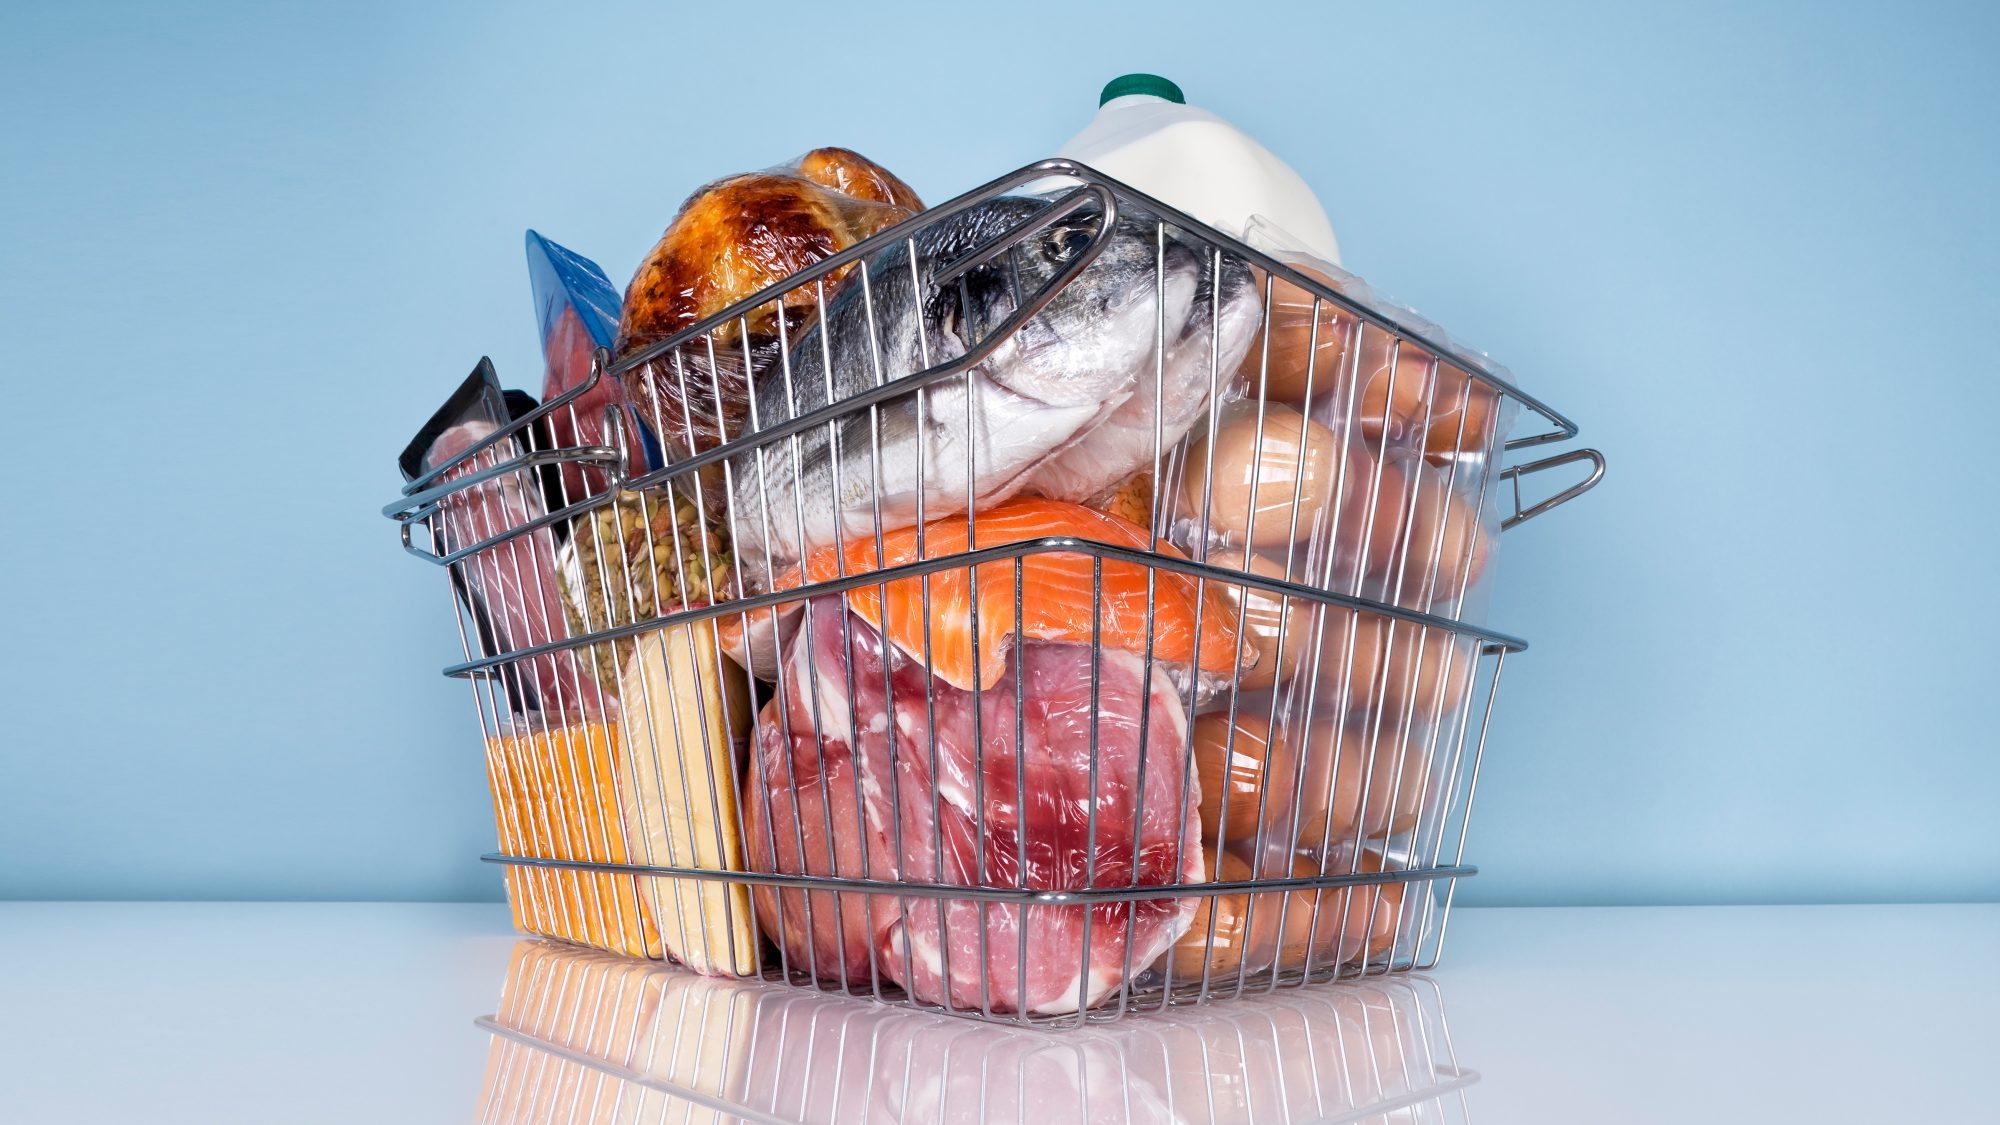 Wire basket full of high protein foods: save money on meat